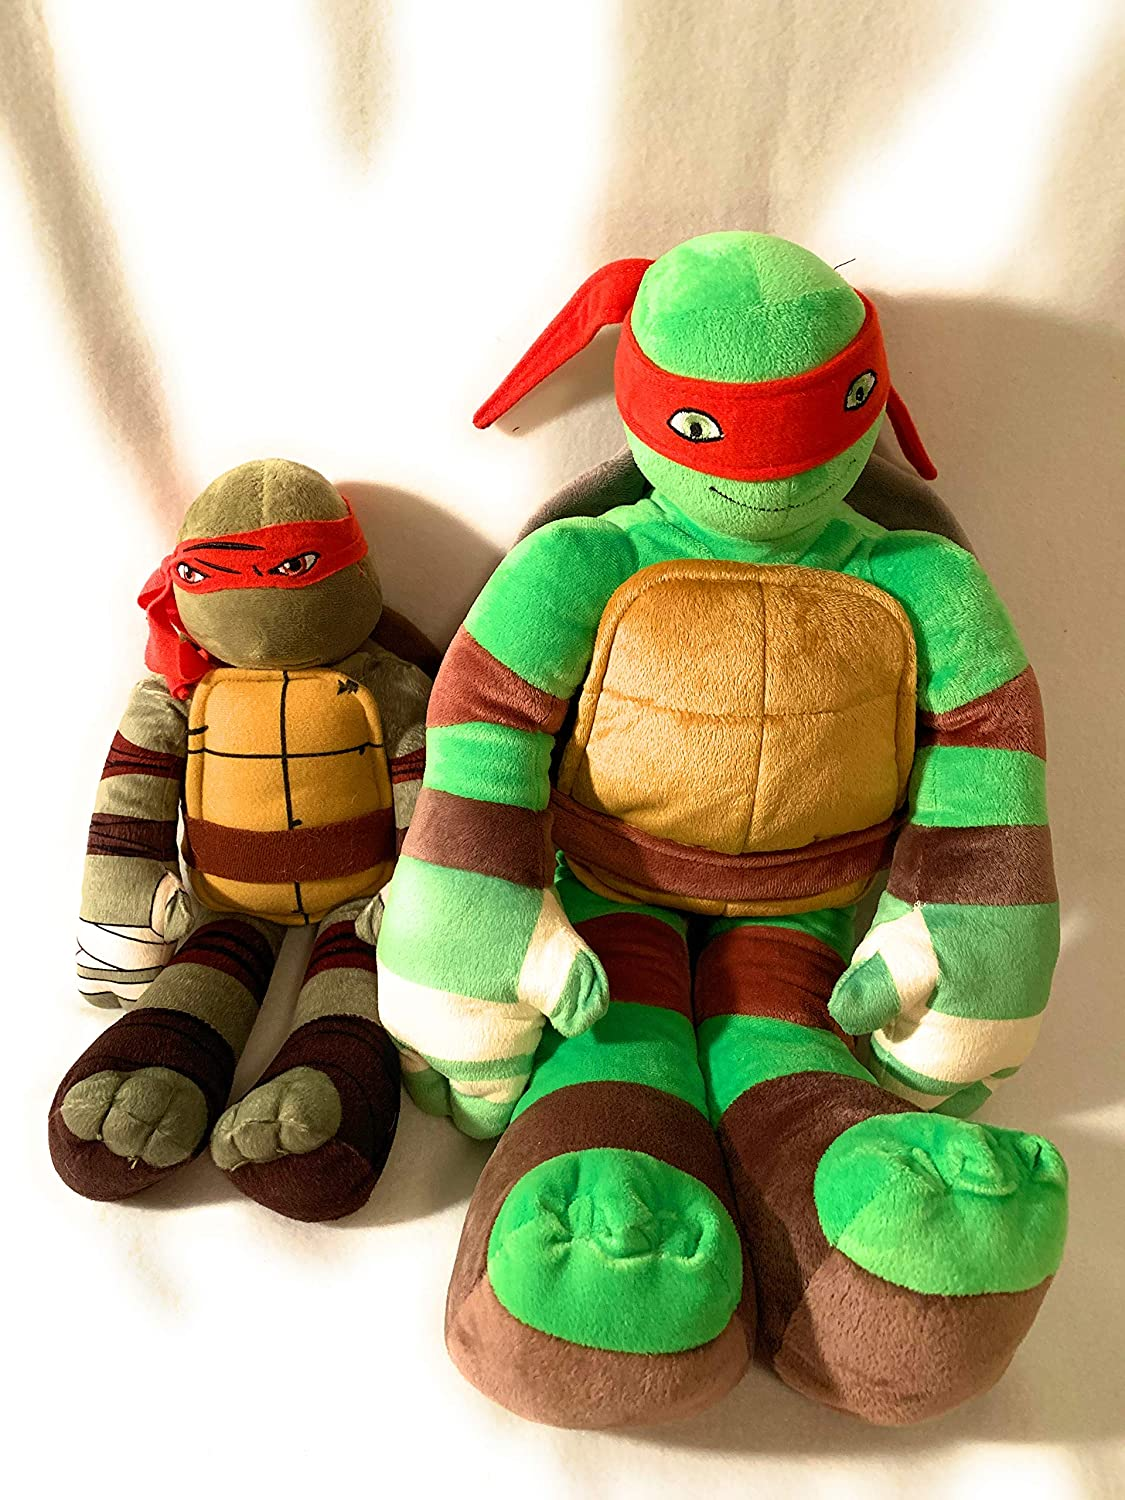 weighted stuffed animal turtle 4 lbs weighted washable buddy sensory toy